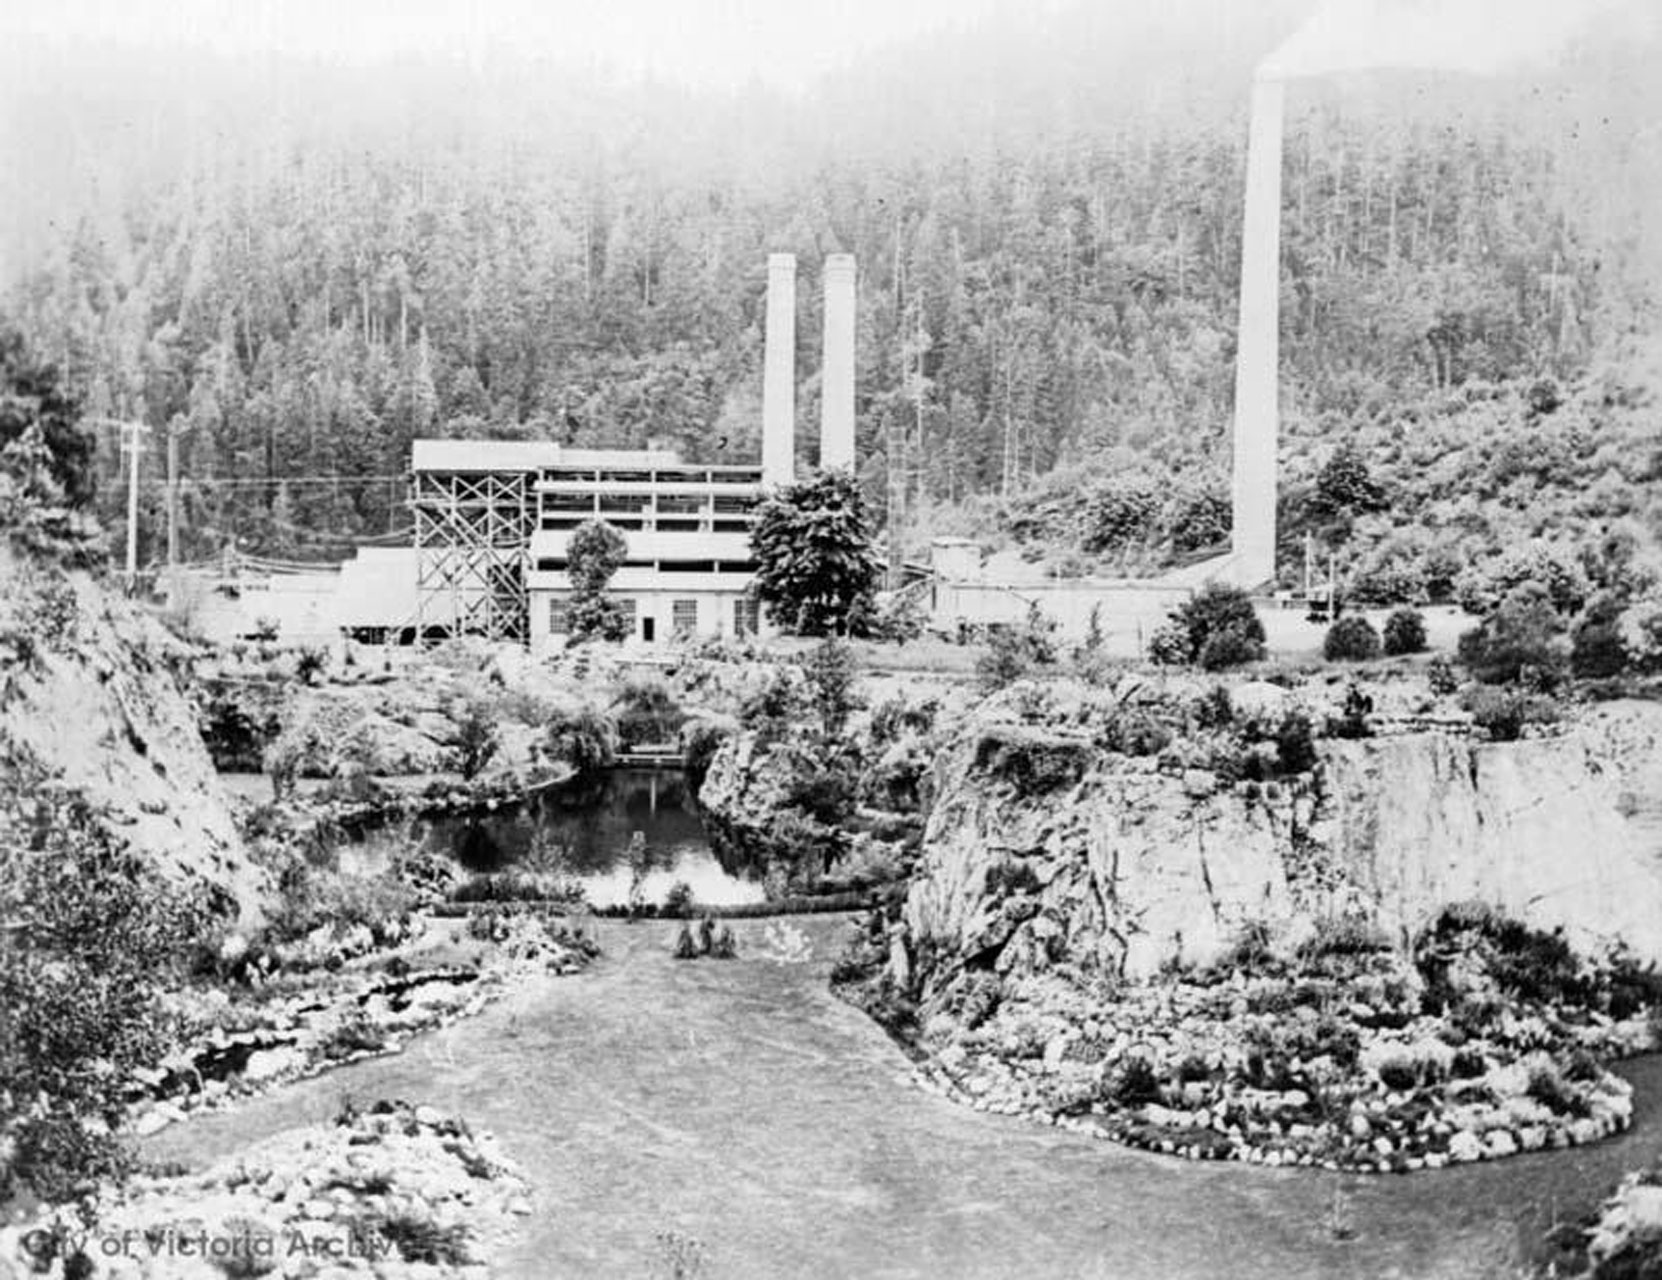 The Vancouver Portland Cement Company plant above the Sunken Garden and the Trout Pond, circa 1910 (City of Victoria Archives photo M00805)